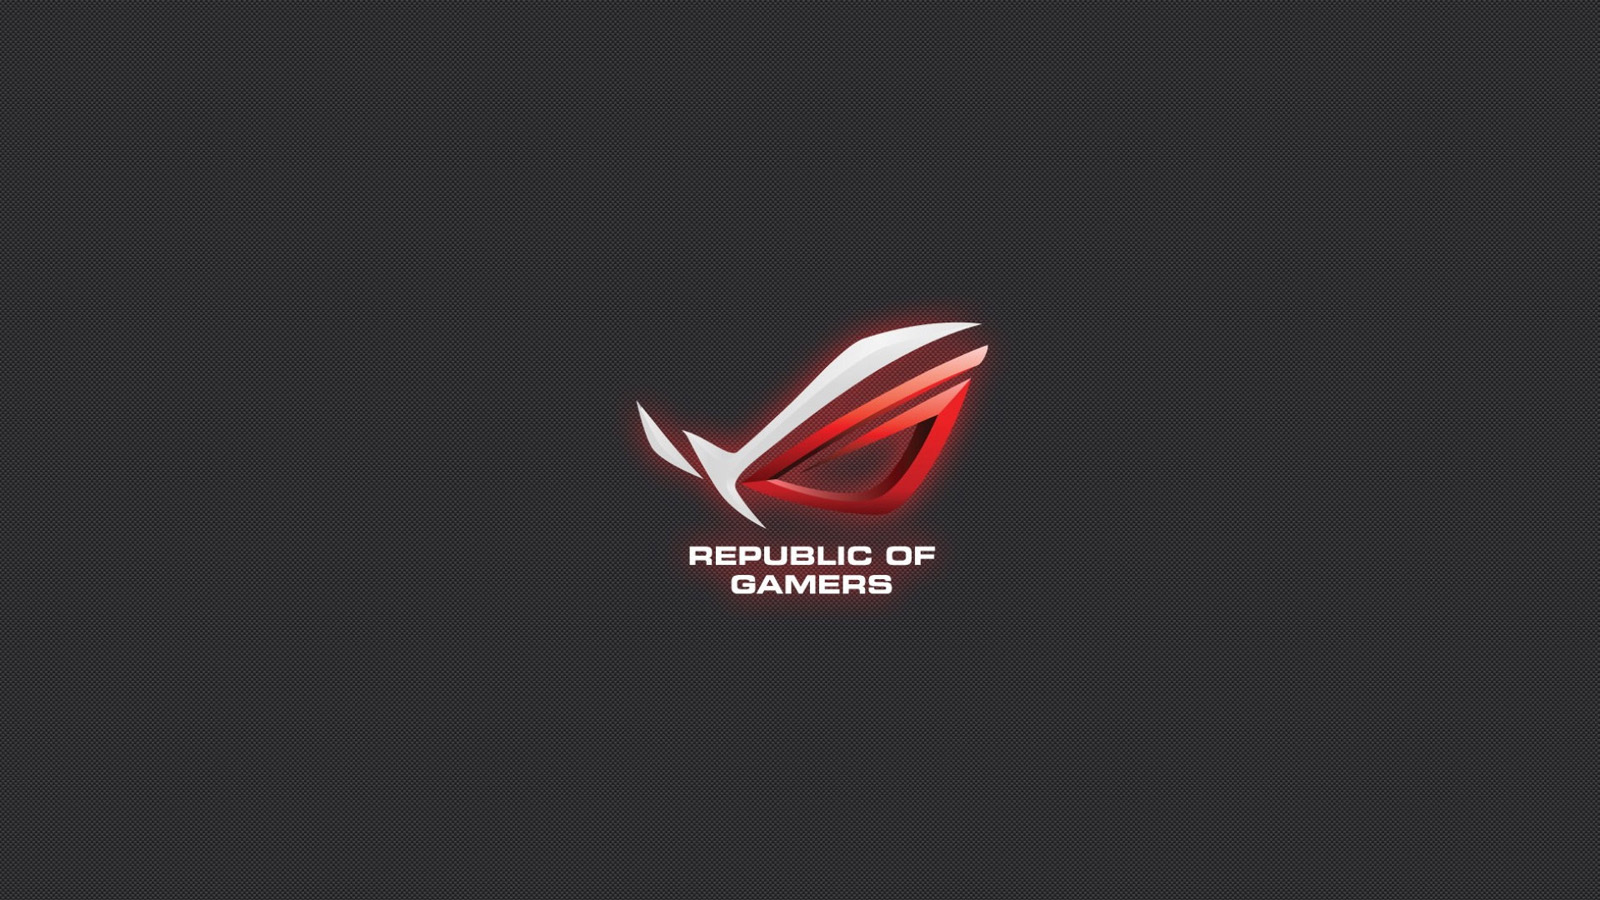 asus official wallpapers - photo #1